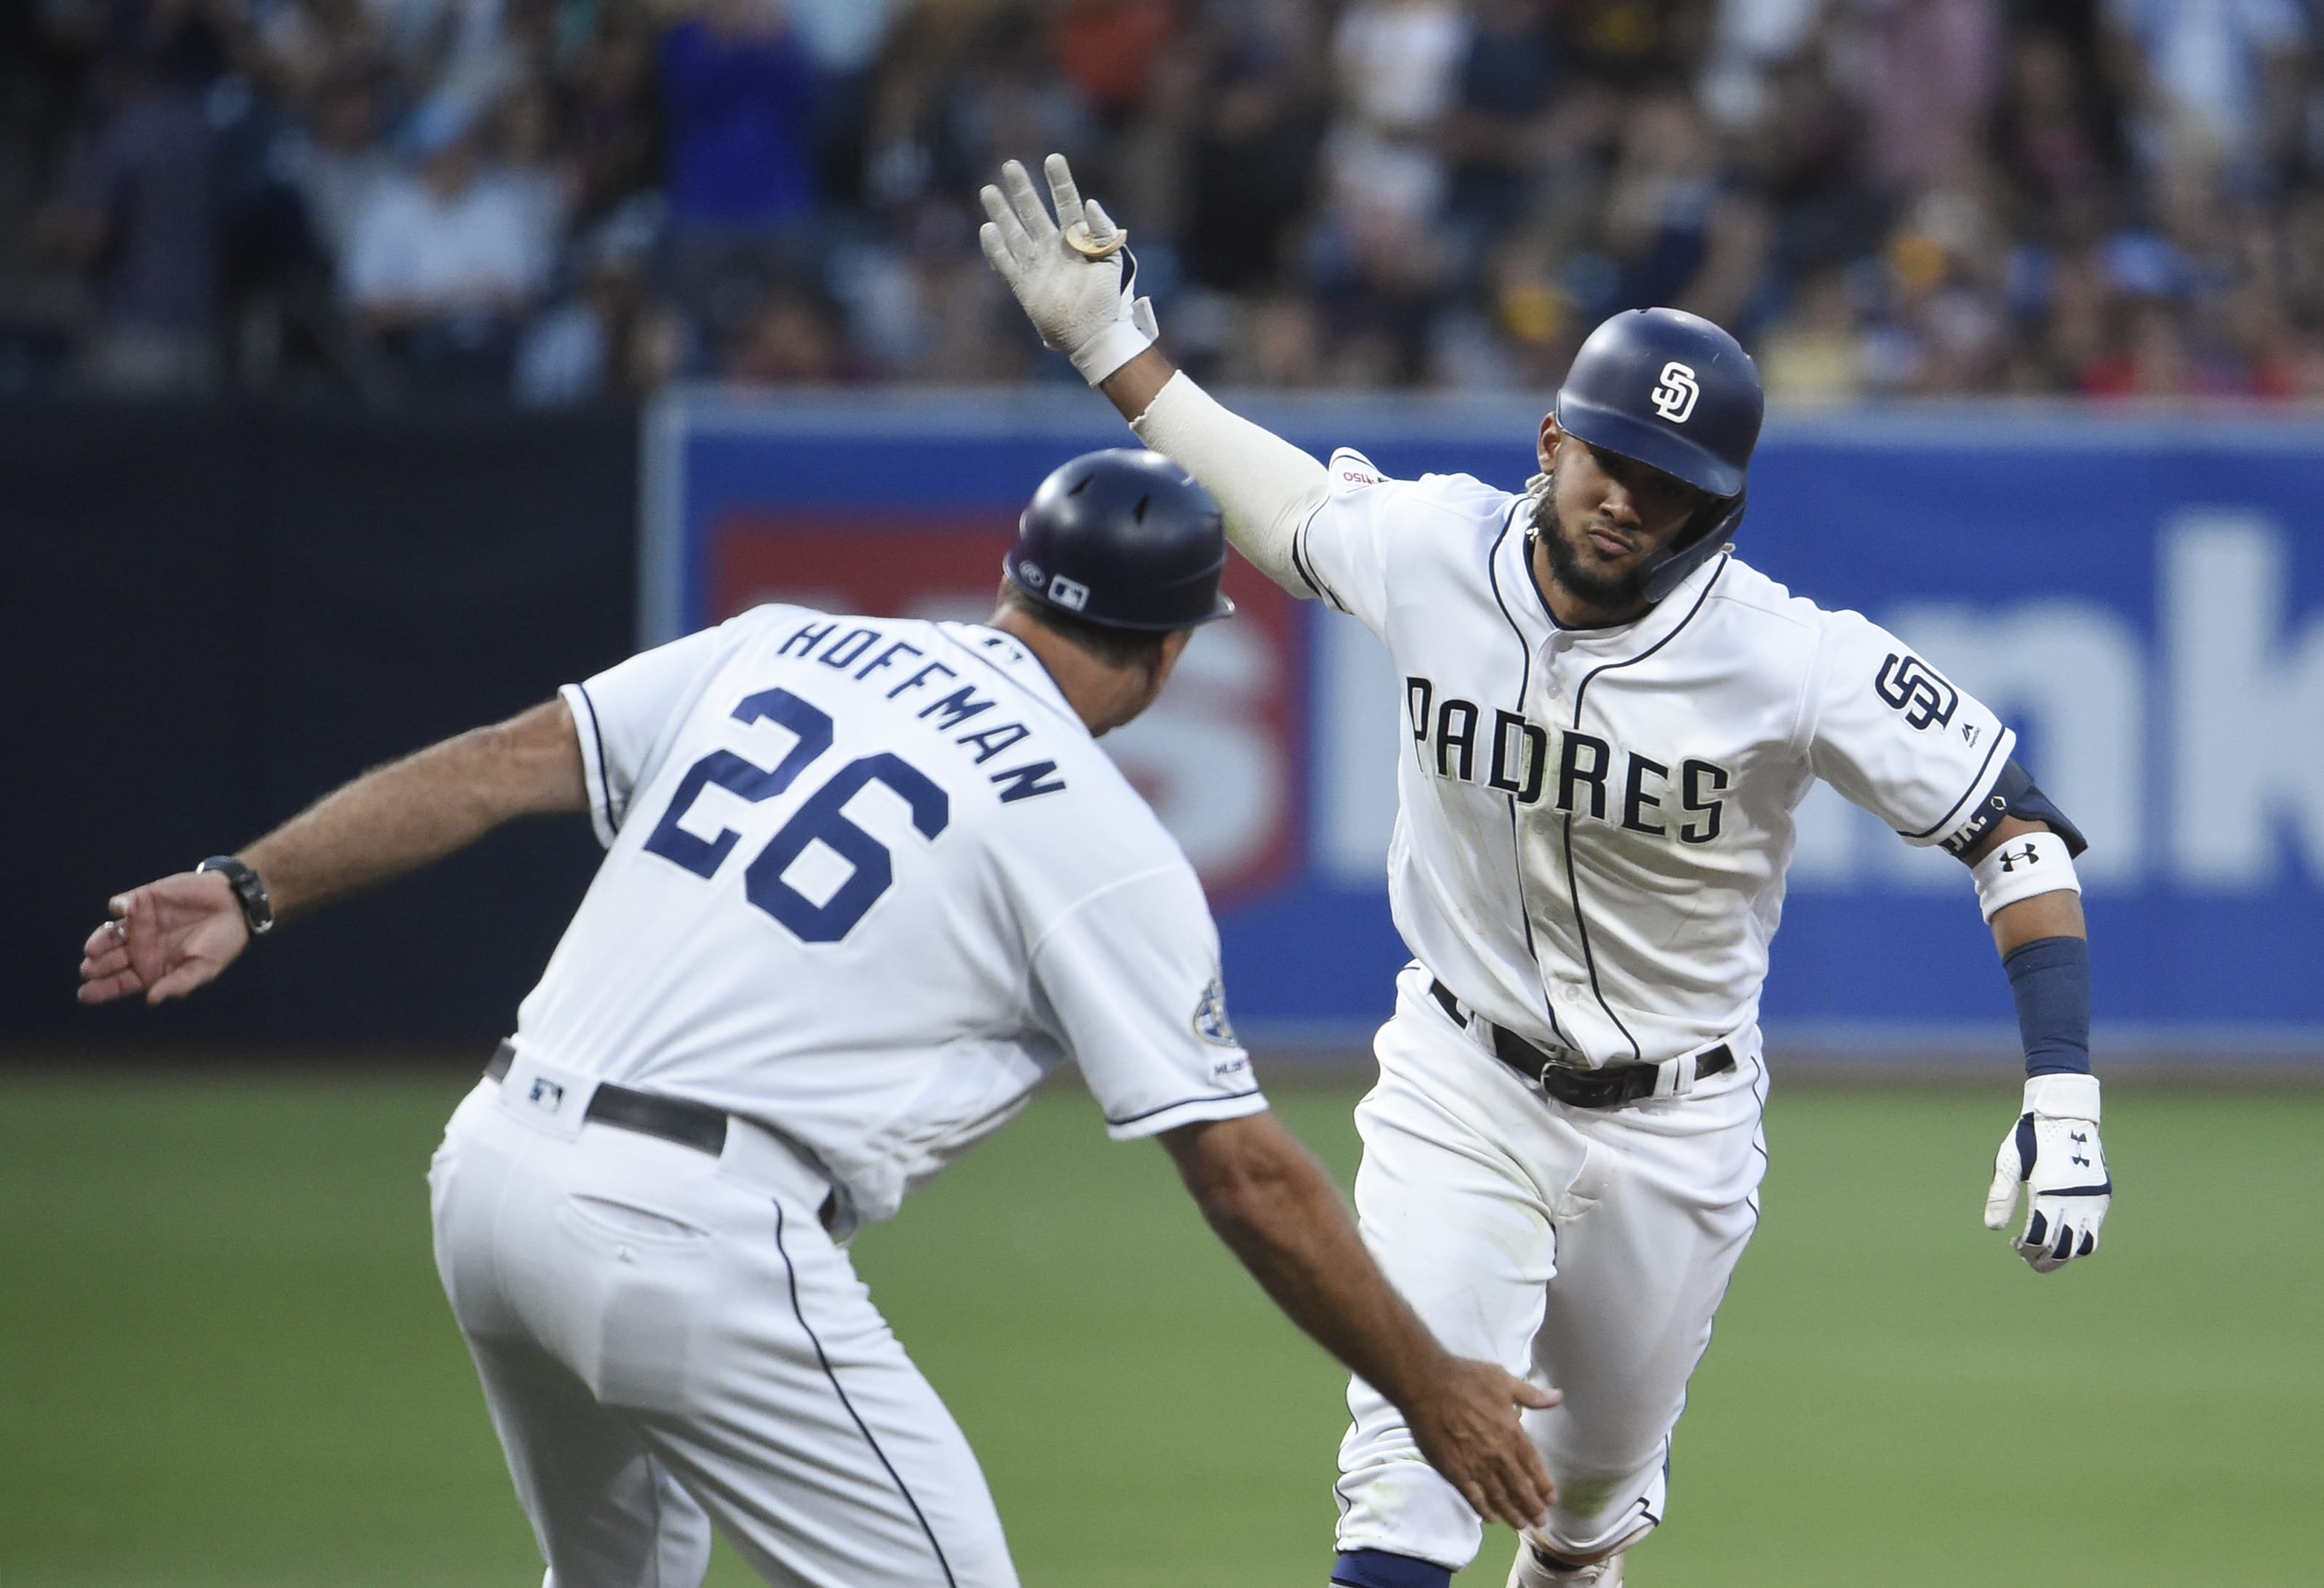 San Diego Padres, Fernando Tatis Jr. hits another lead off home run